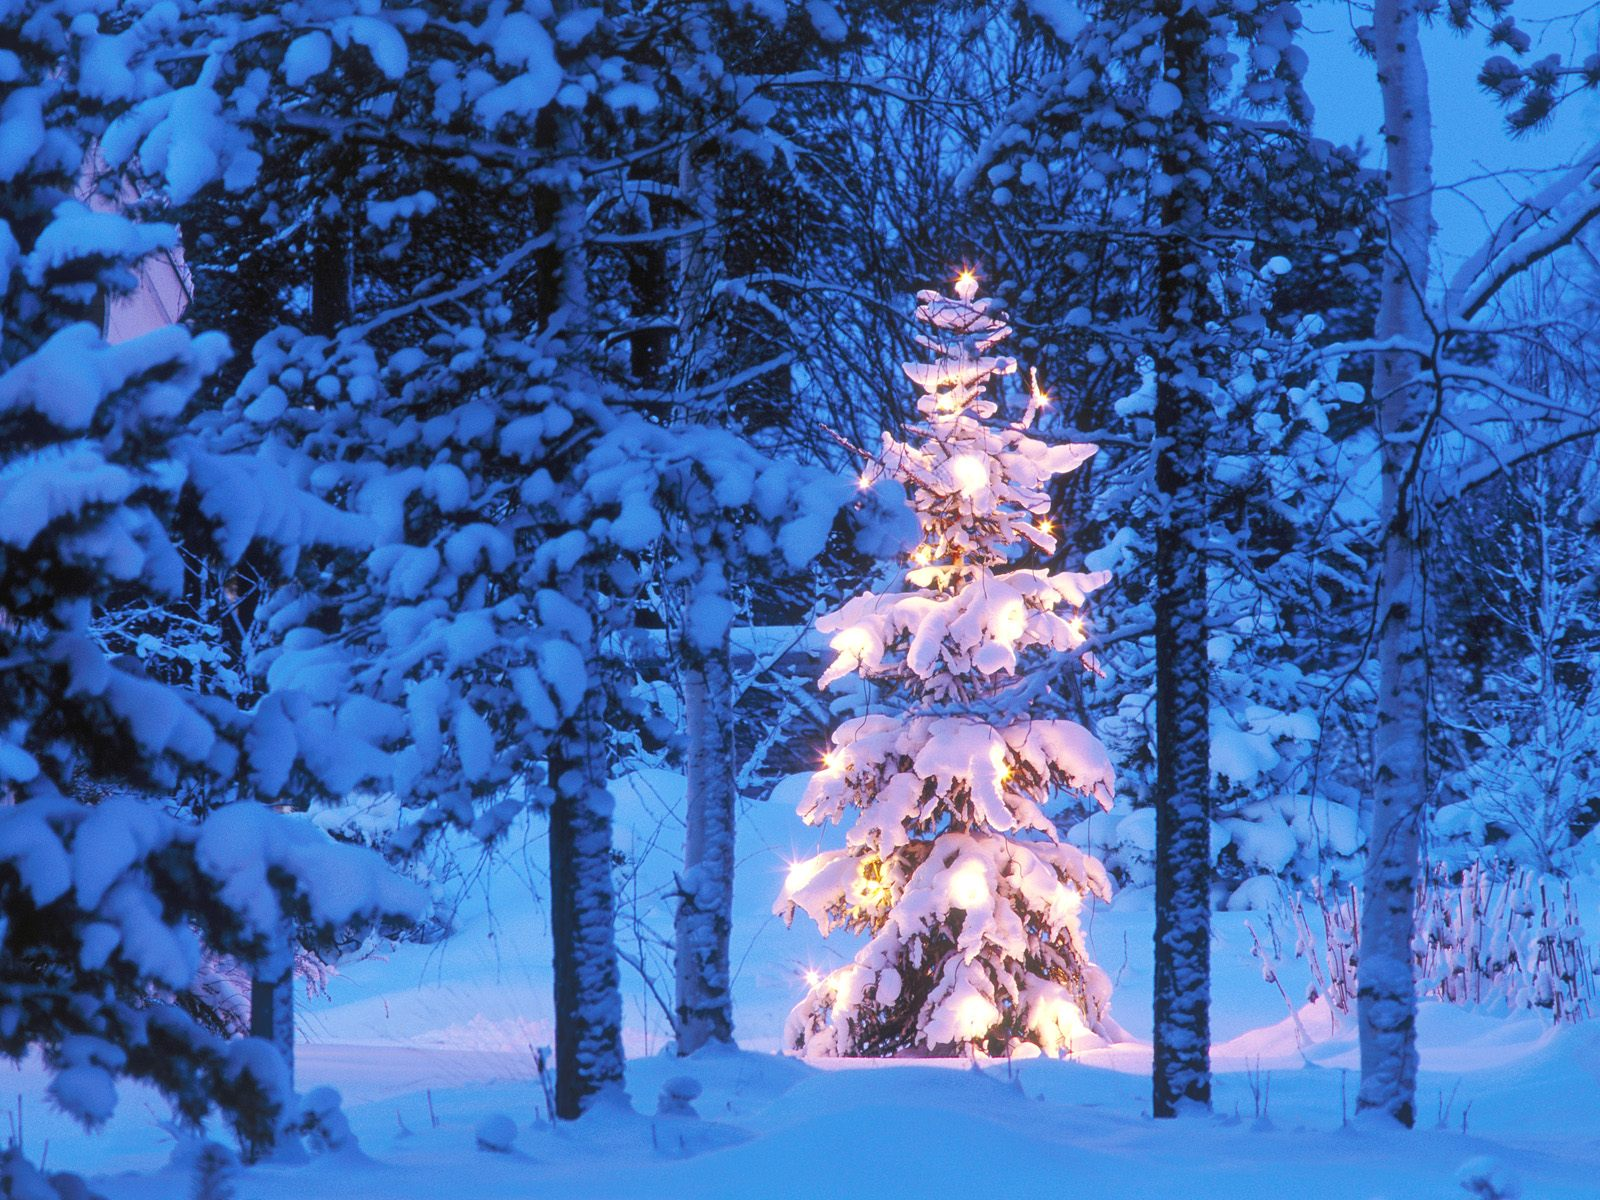 Download Christmas Tree In Snow Wallpaper 1600x1200 48